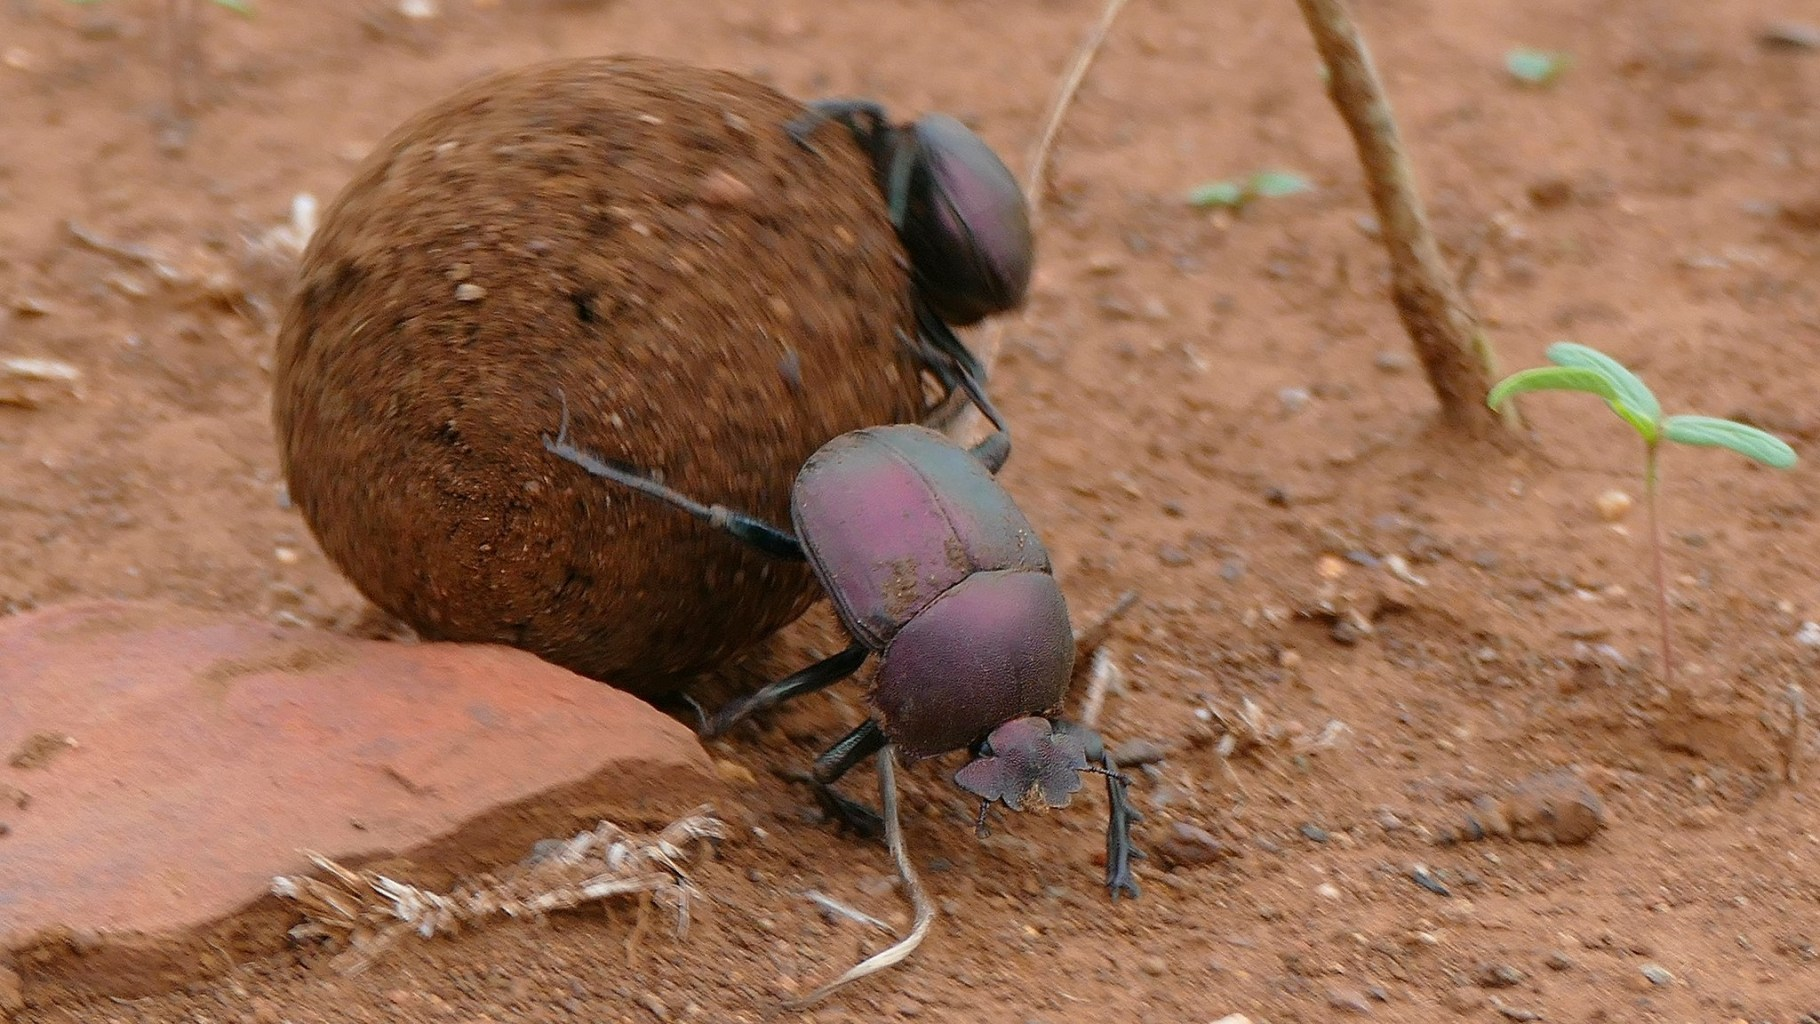 Image: a dung beetle and his friend rolling dung